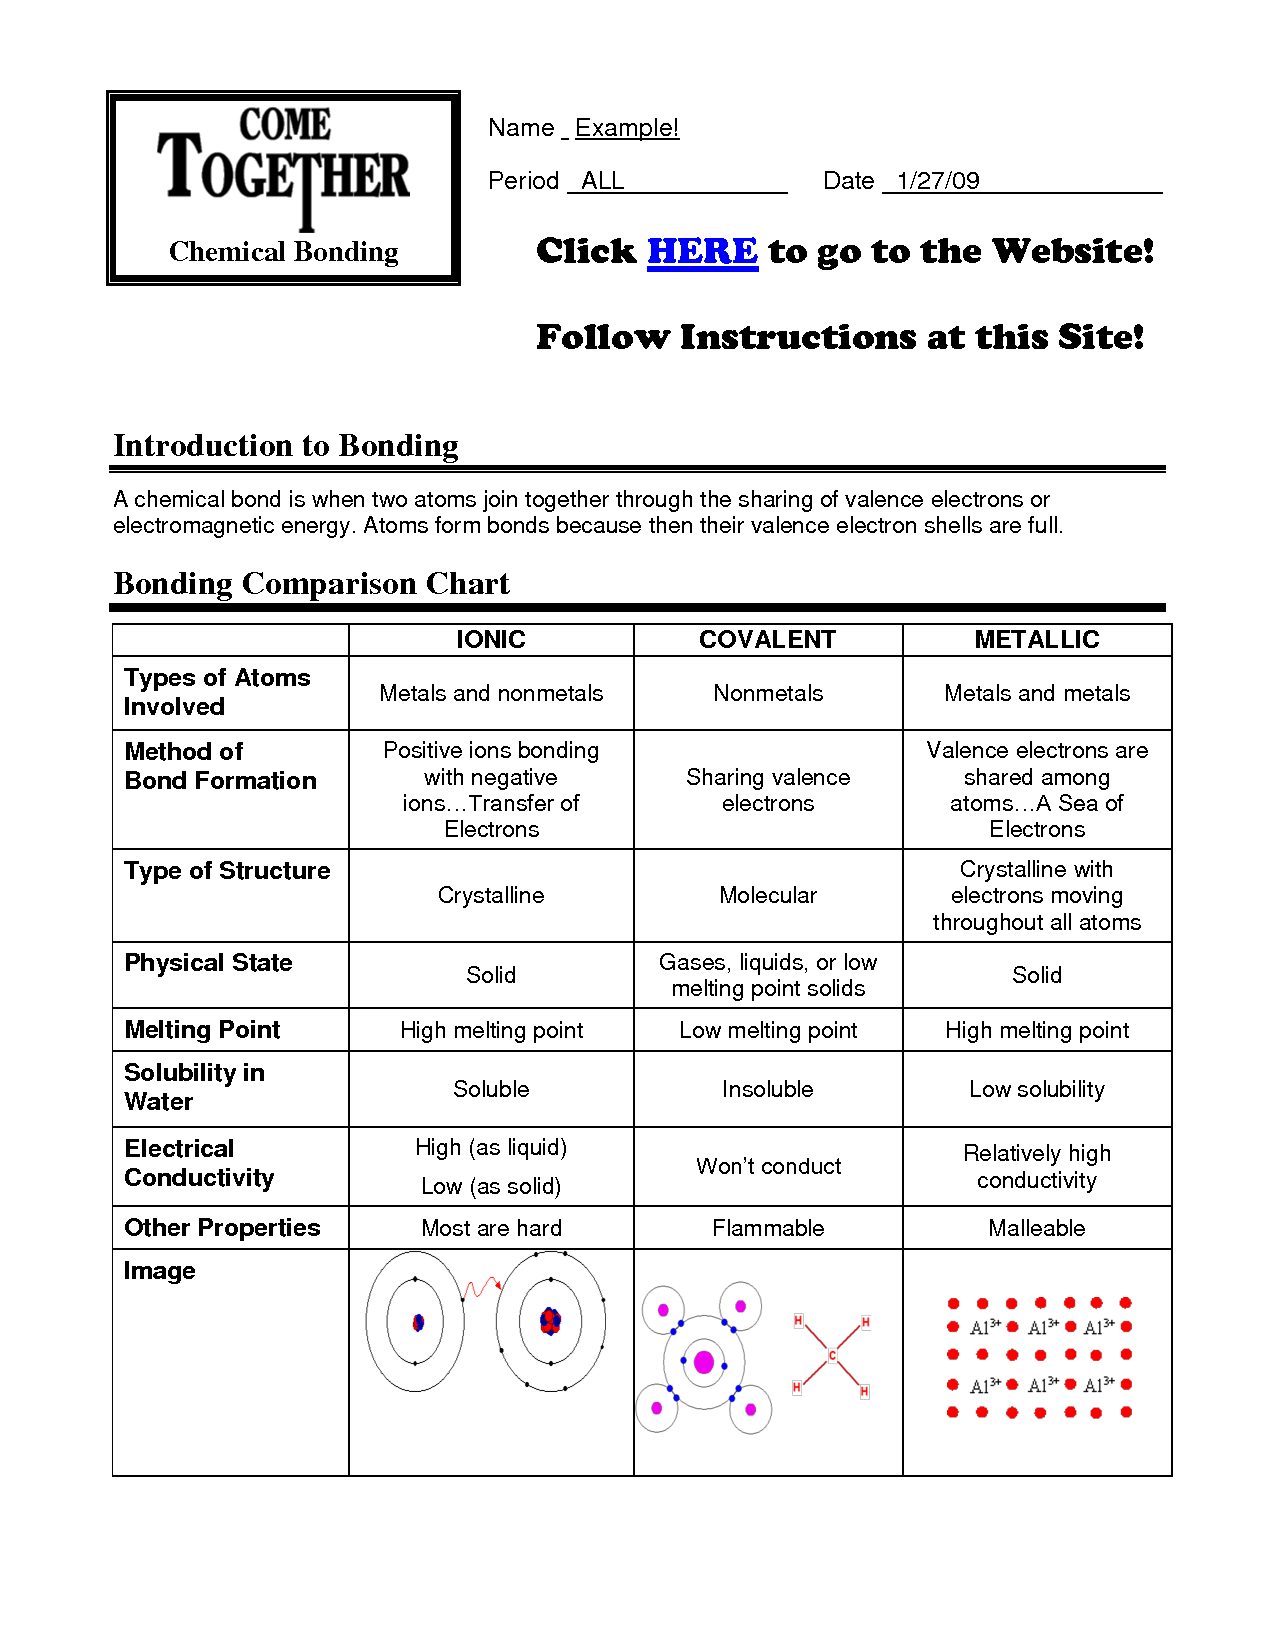 16 Best Images of Types Of Chemical Bonds Worksheet Answers  Chemical Bonding Worksheet Answer